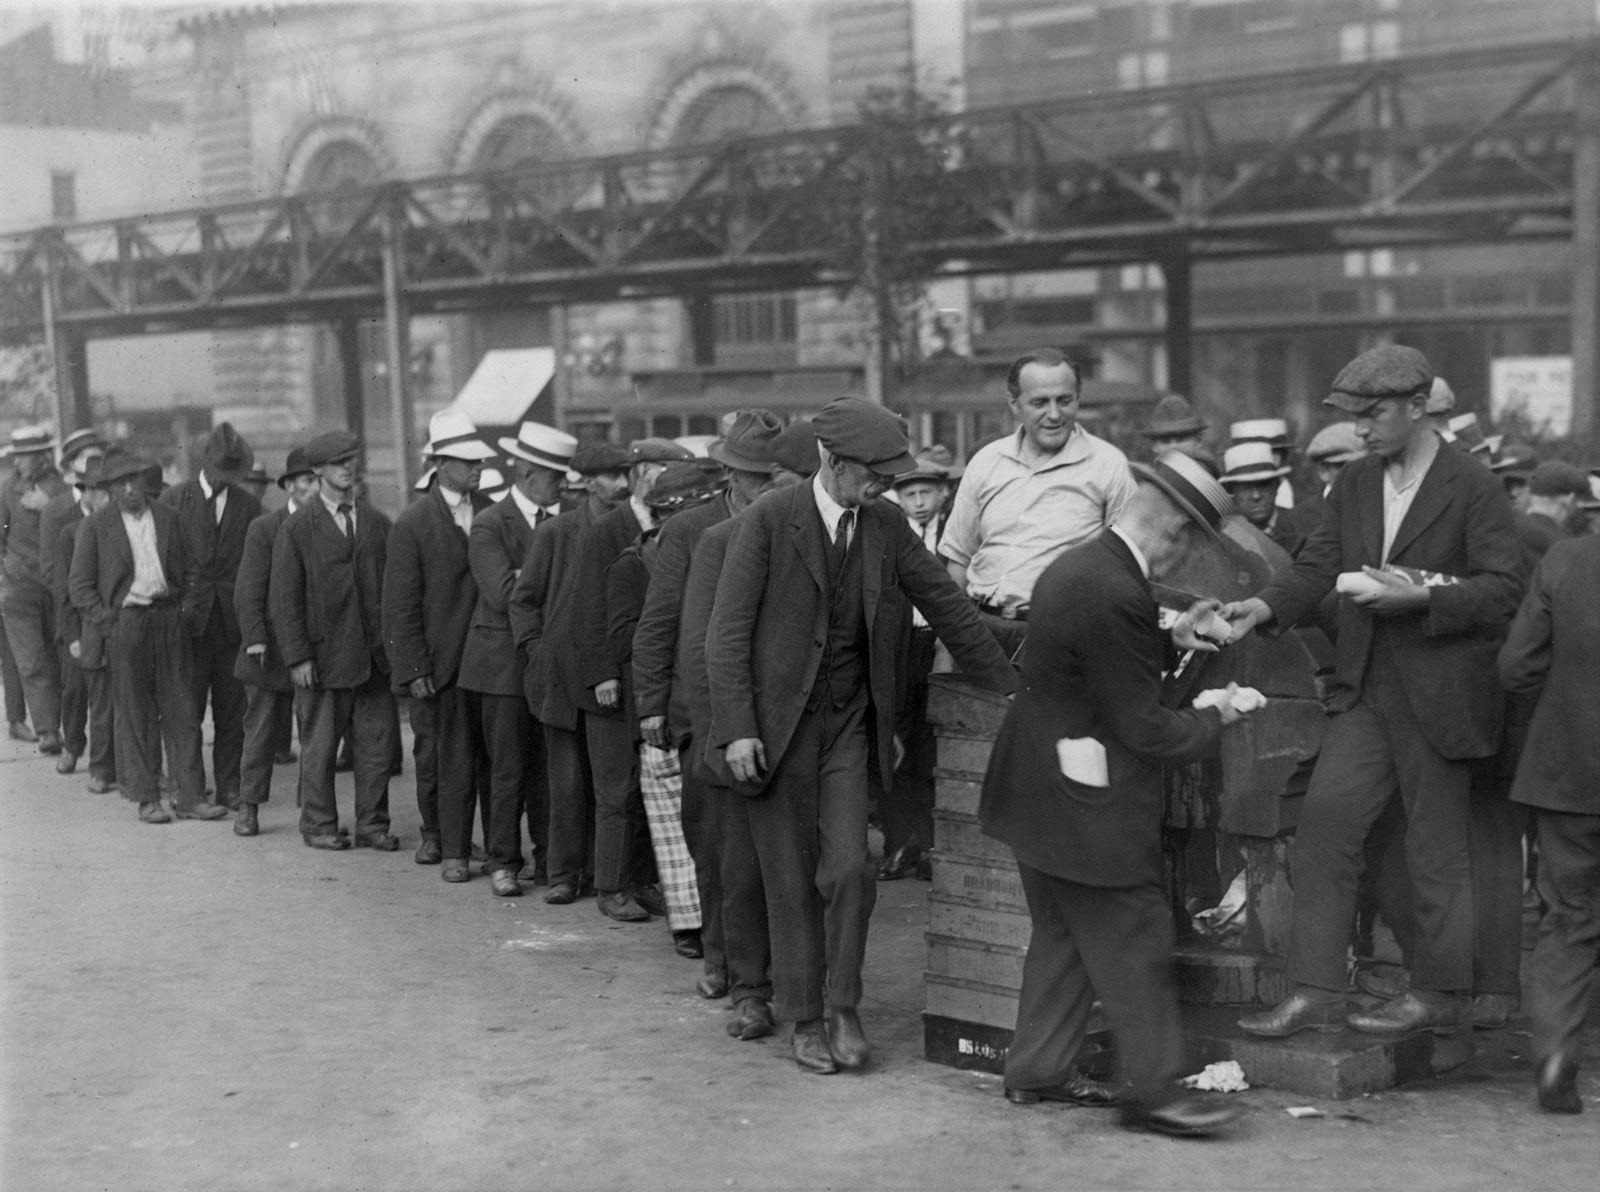 Wednesday's Web Link – What were rates like during the depression?